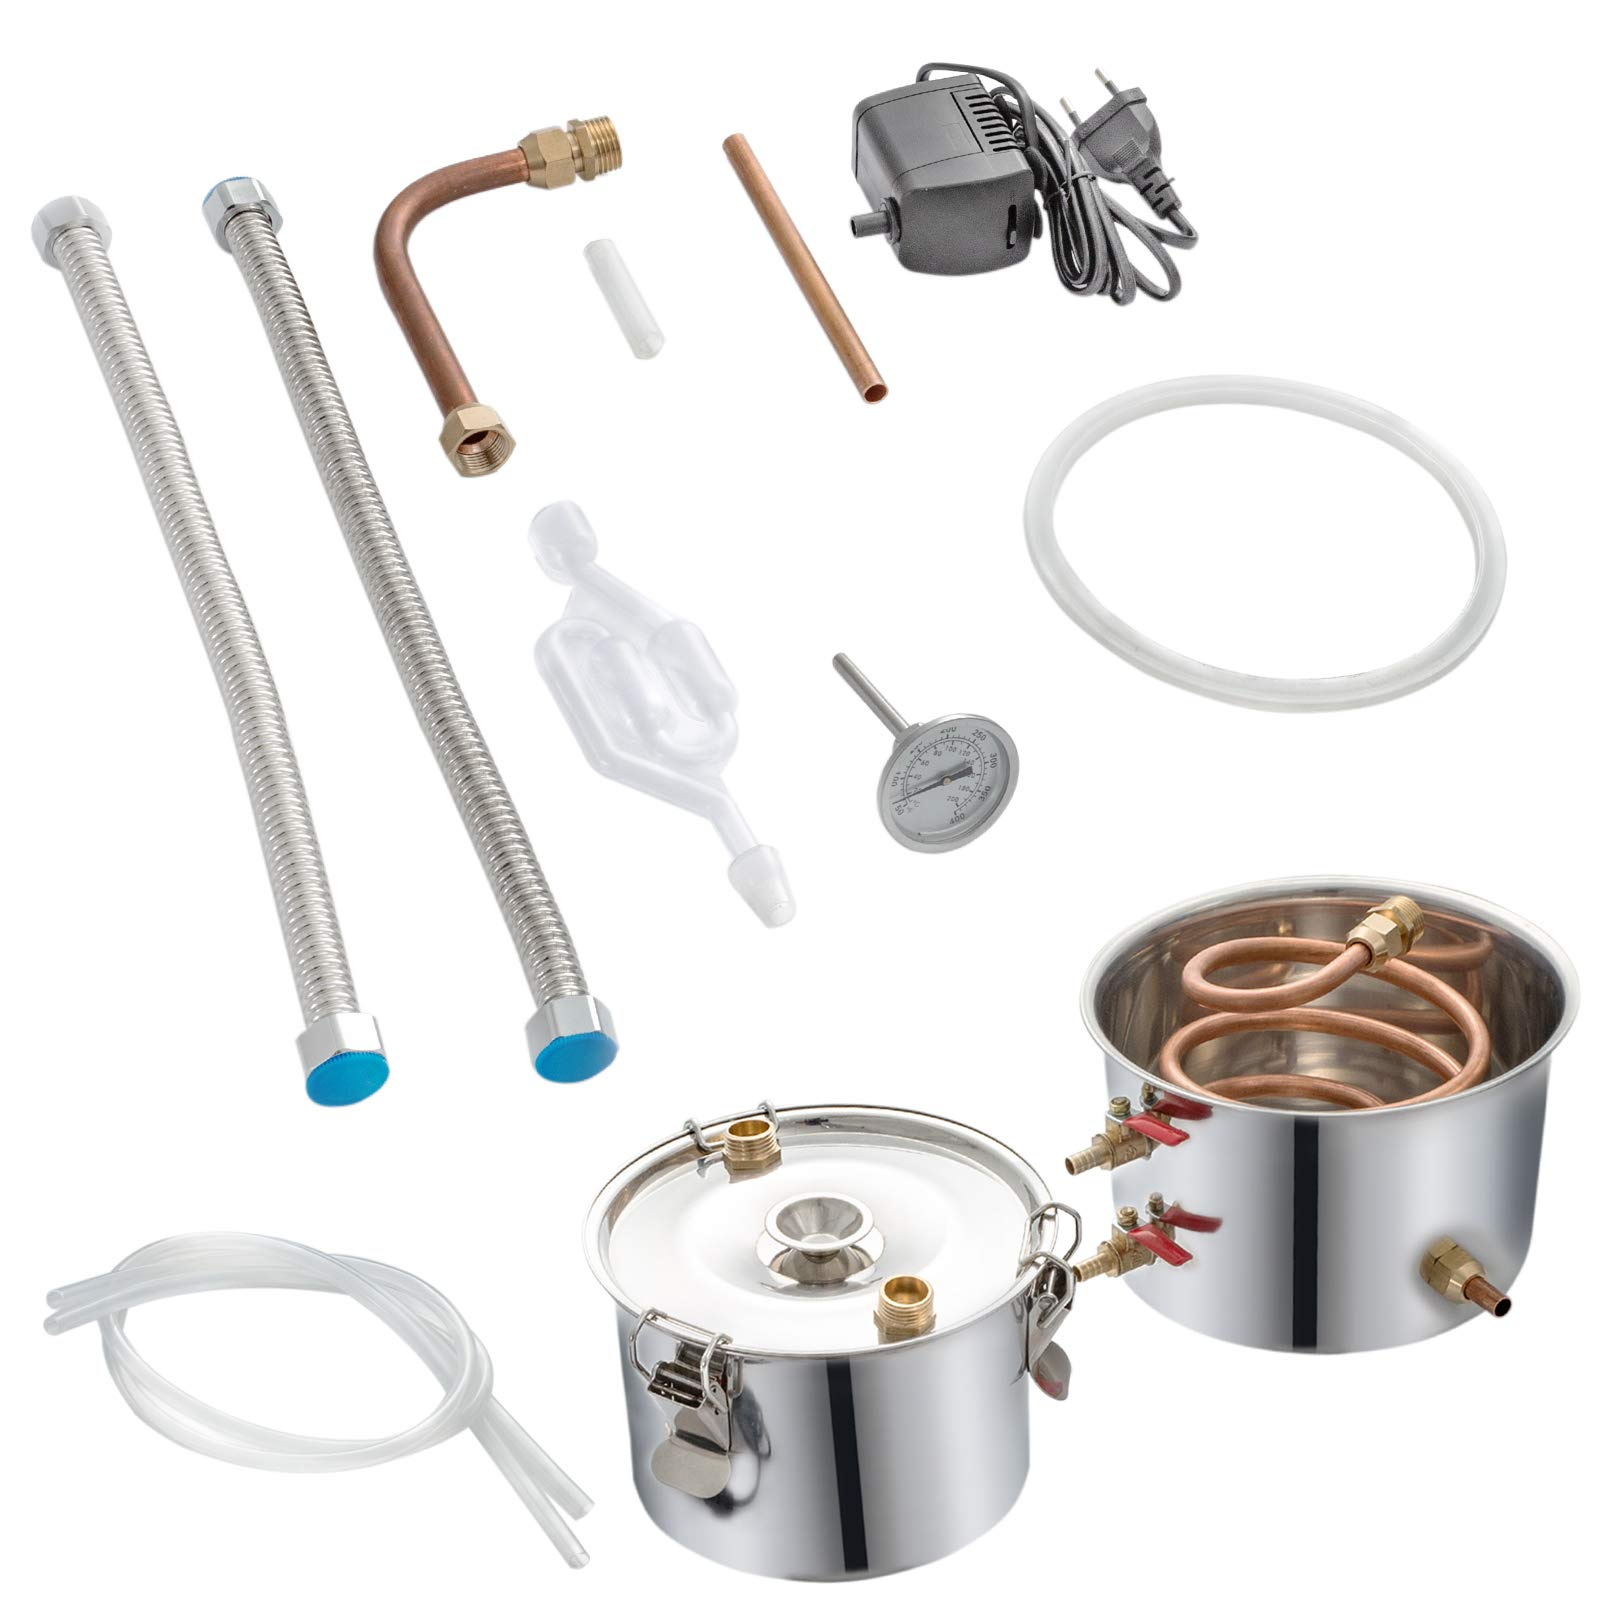 VEVOR Moonshine Still 5 Gal 21L Stainless Steel Water Alcohol Distiller Copper Tube Home Brewing Kit Build-in Thermometer for DIY Whisky Wine Brandy, 3 pots by VEVOR (Image #9)